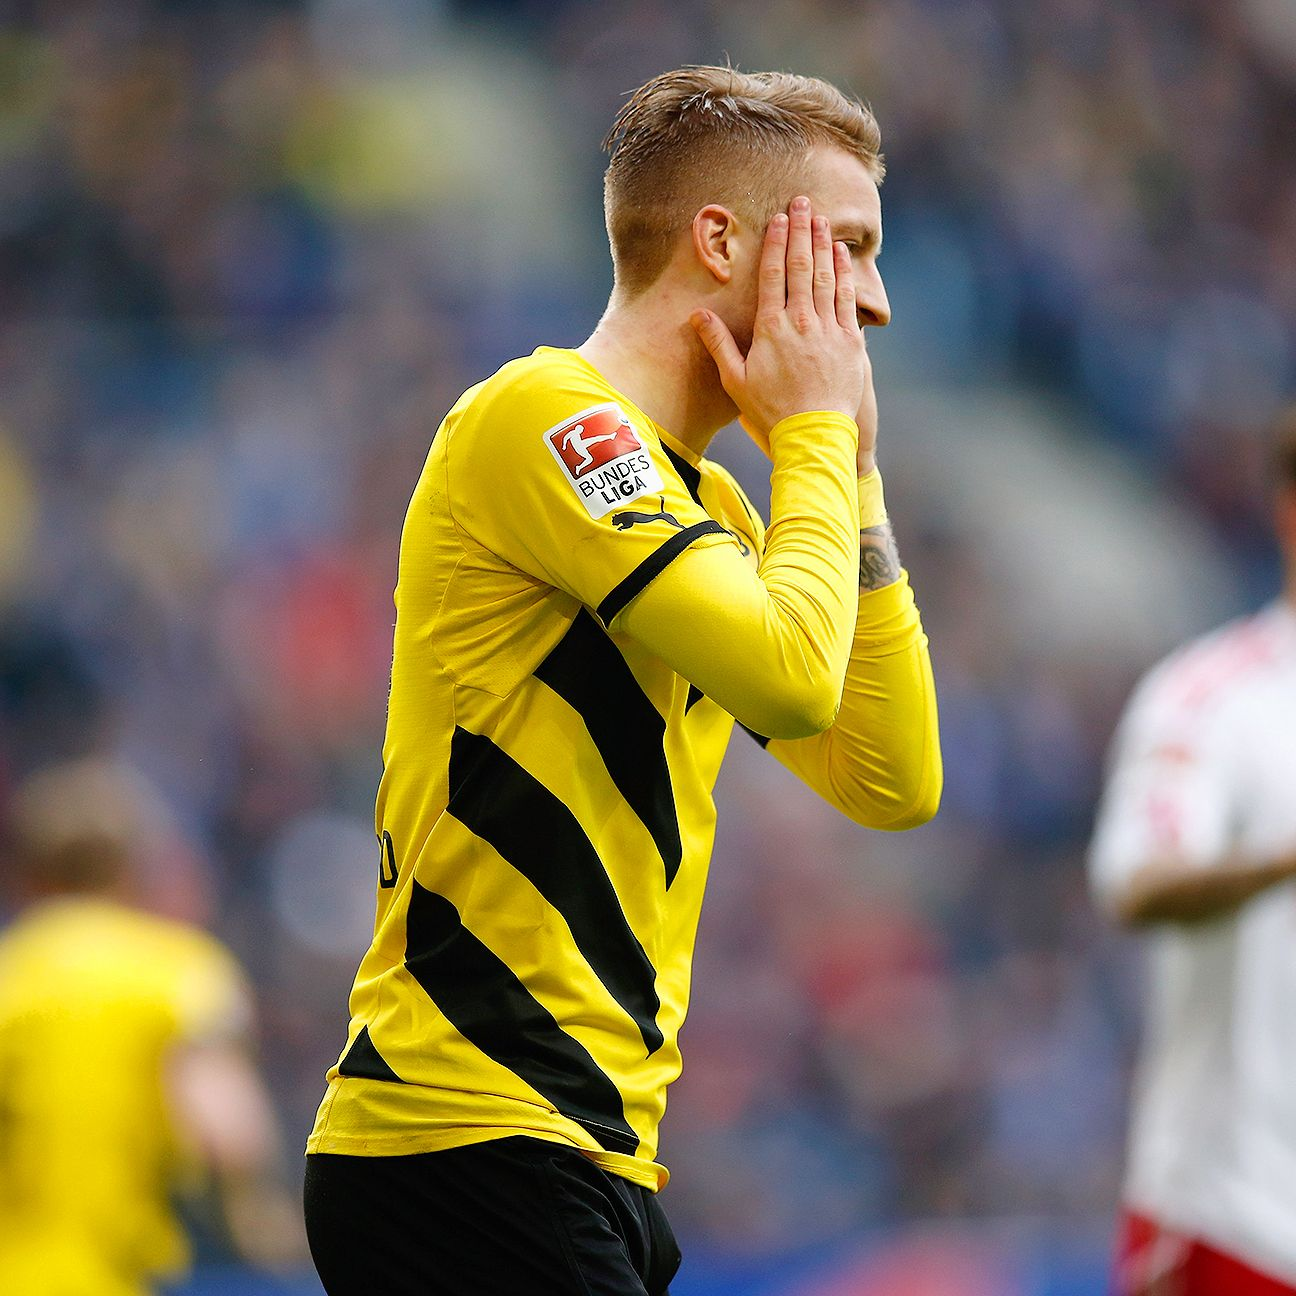 Borussia Dortmund's four-match Bundesliga winning streak came to an end in Saturday's 0-0 draw at Hamburg.